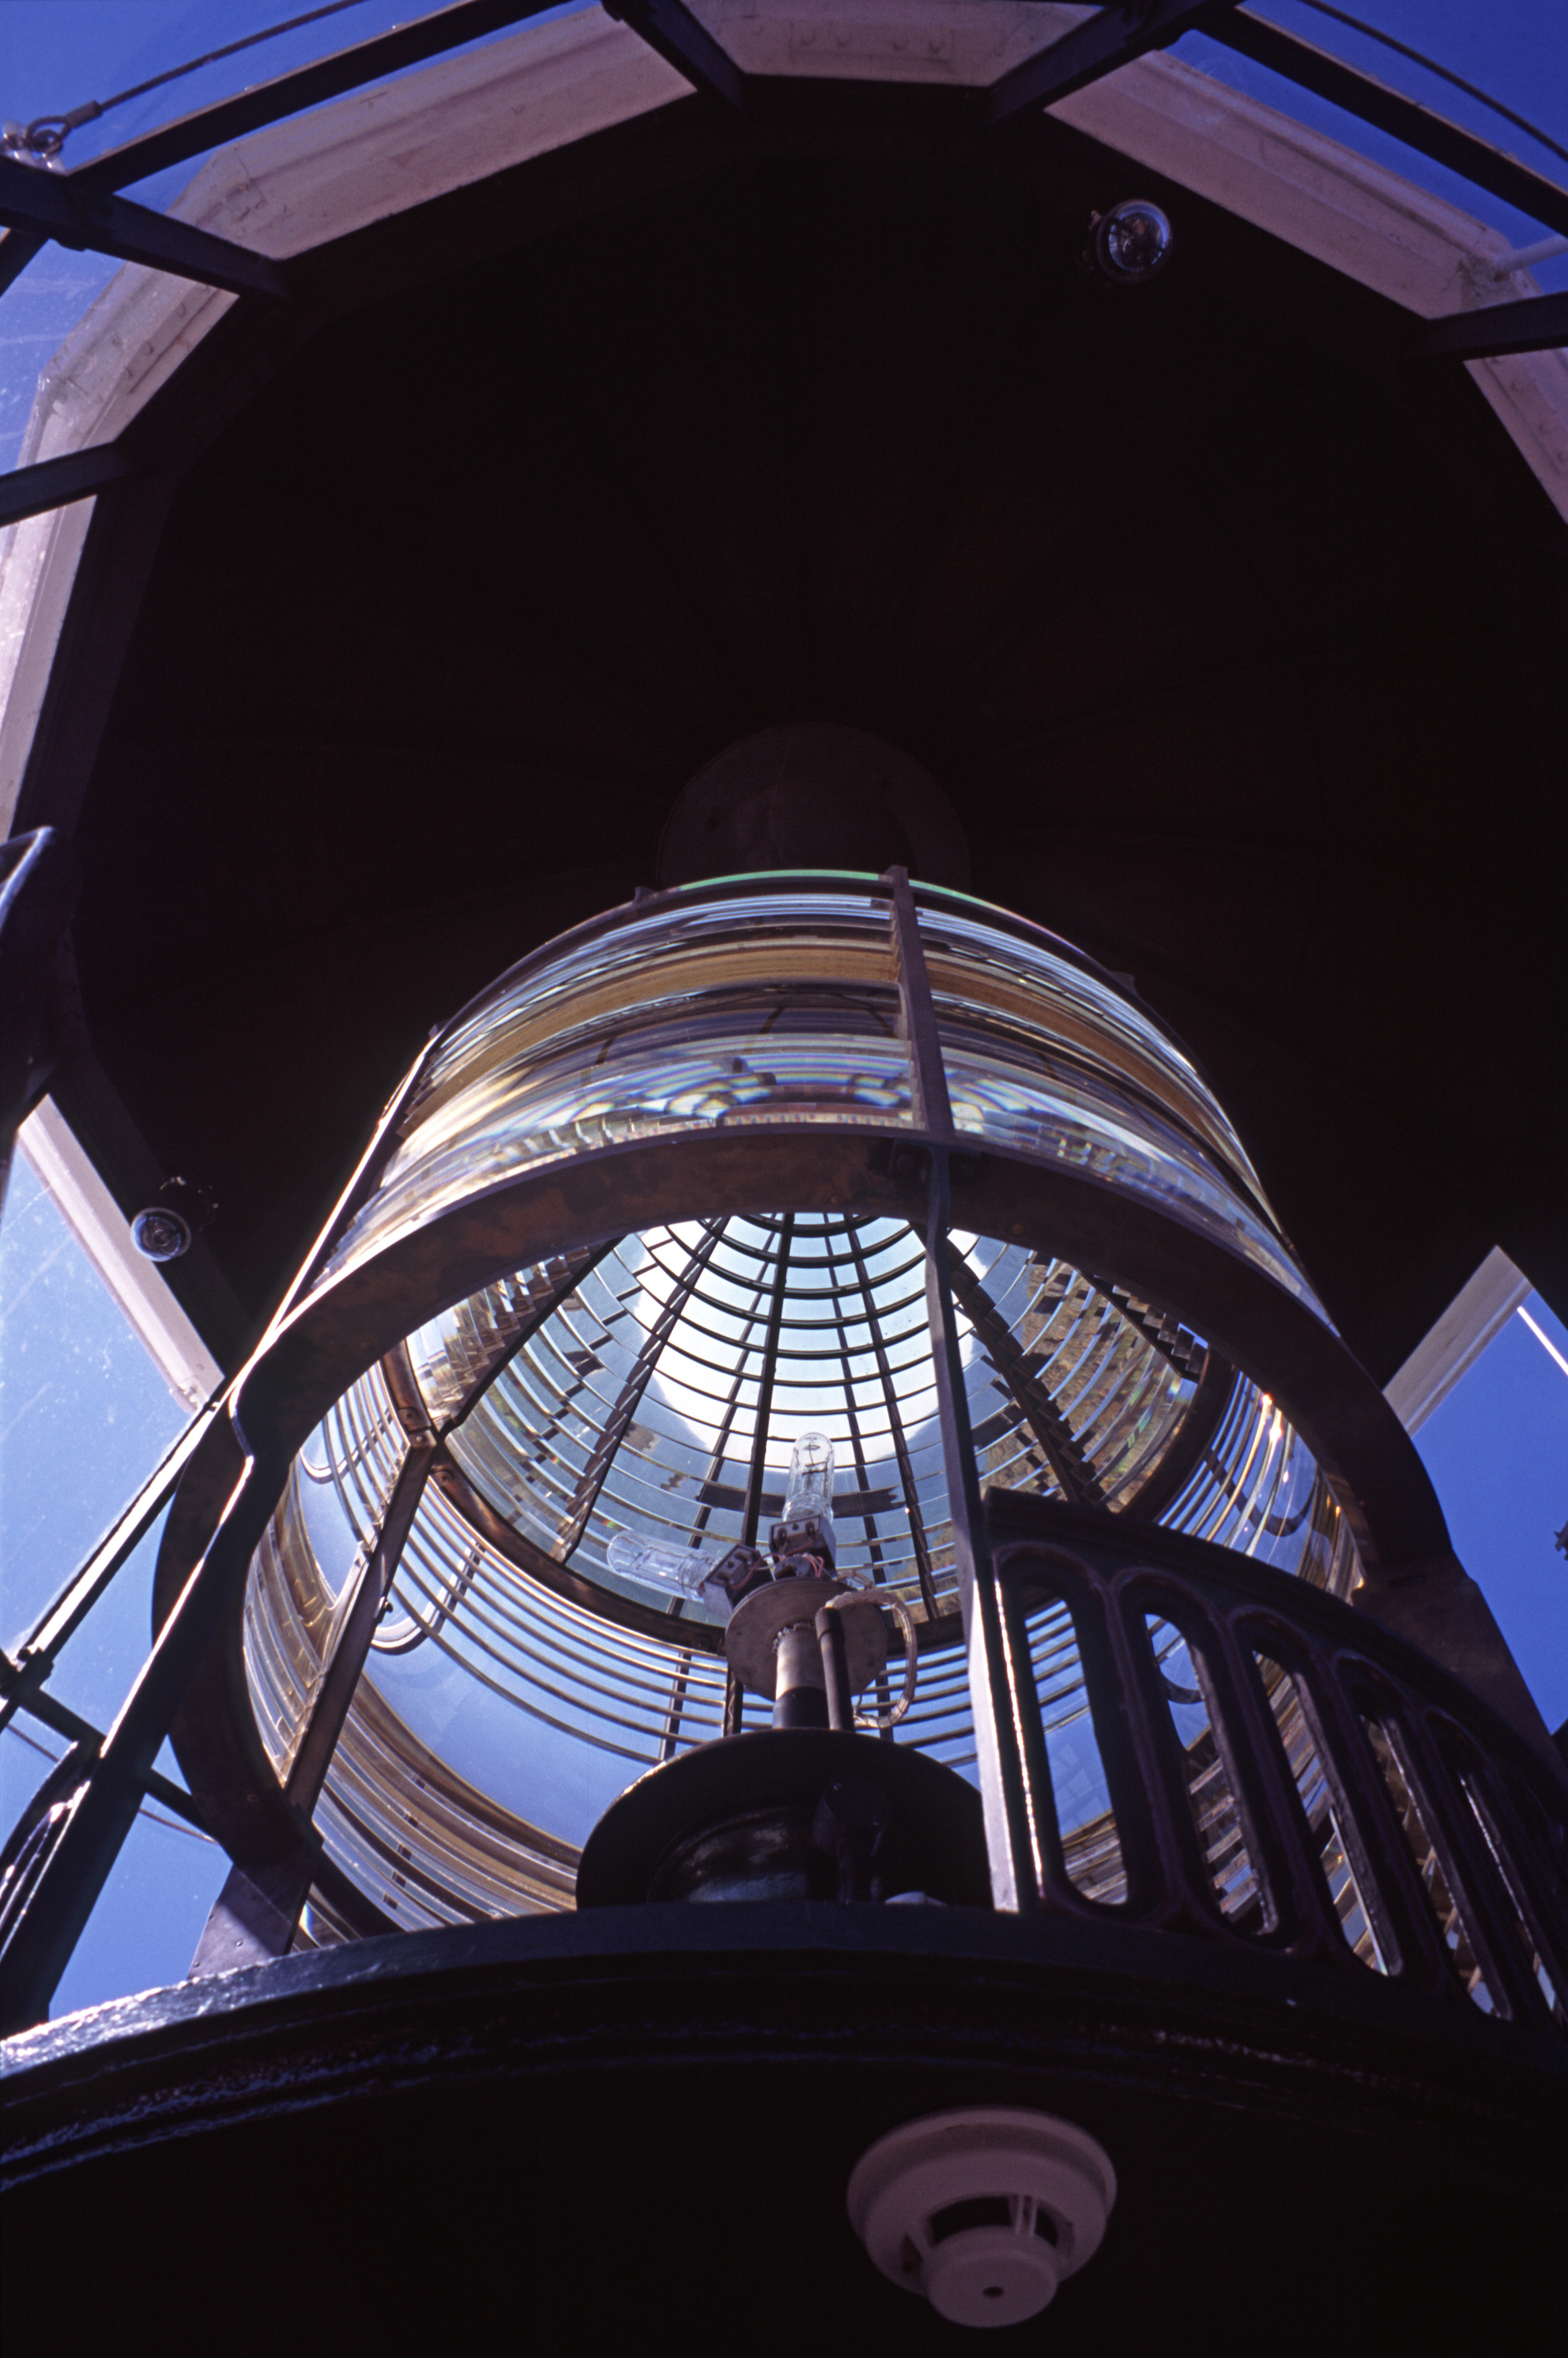 a low angle view of the complex lens and lighting system in a lighthouse lantern room.